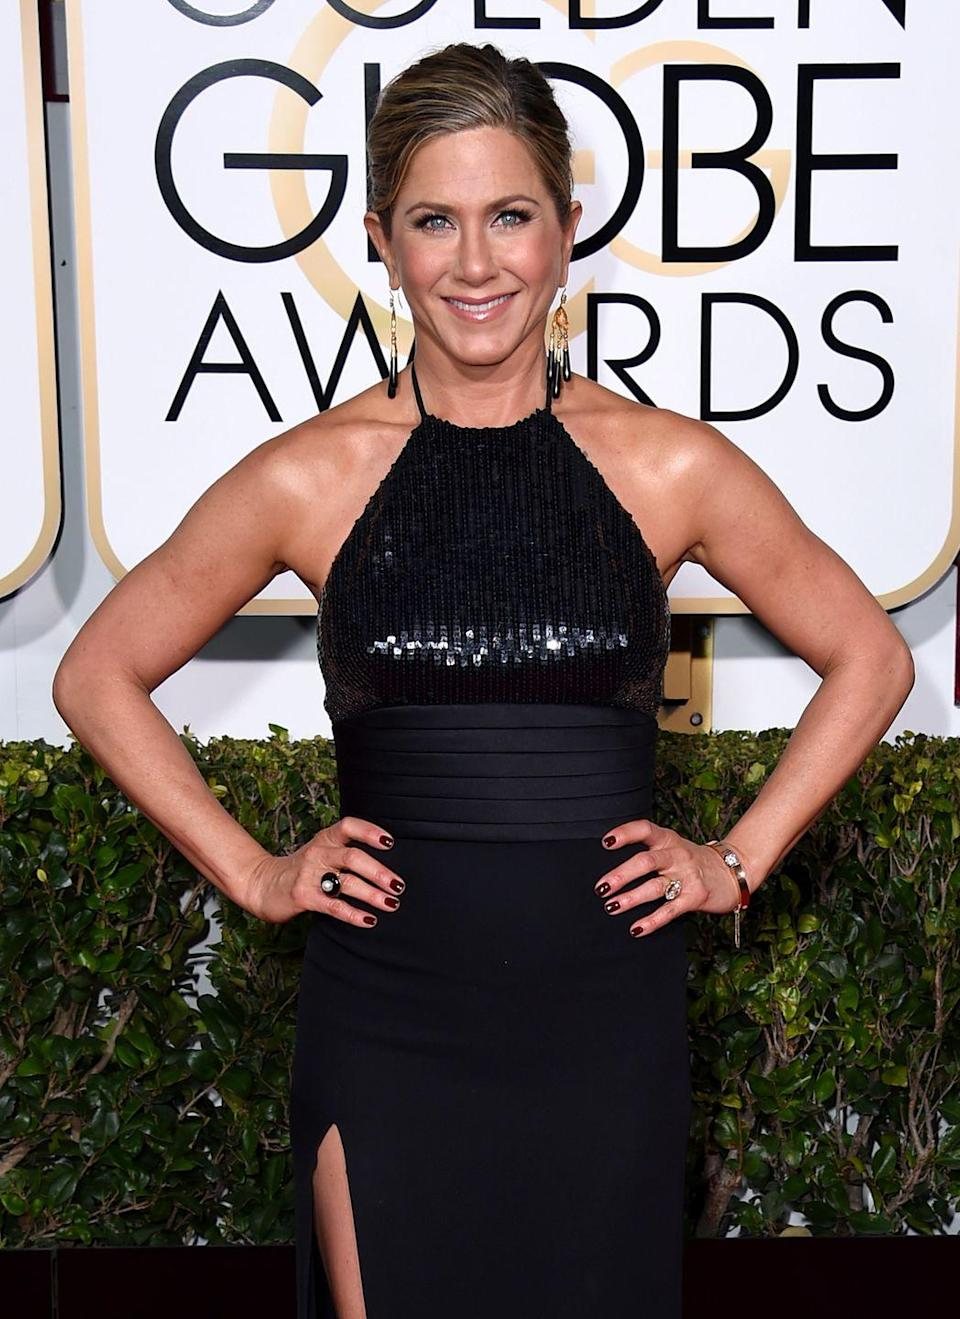 <p>It's clear Jen's go-to color is black, and it's easy to see why. She looks <em>fabulous</em>. She wore this shimmery dress to the Golden Globe Awards in 2015, where she was nominated for her role in <em>Cake</em>. <br></p>